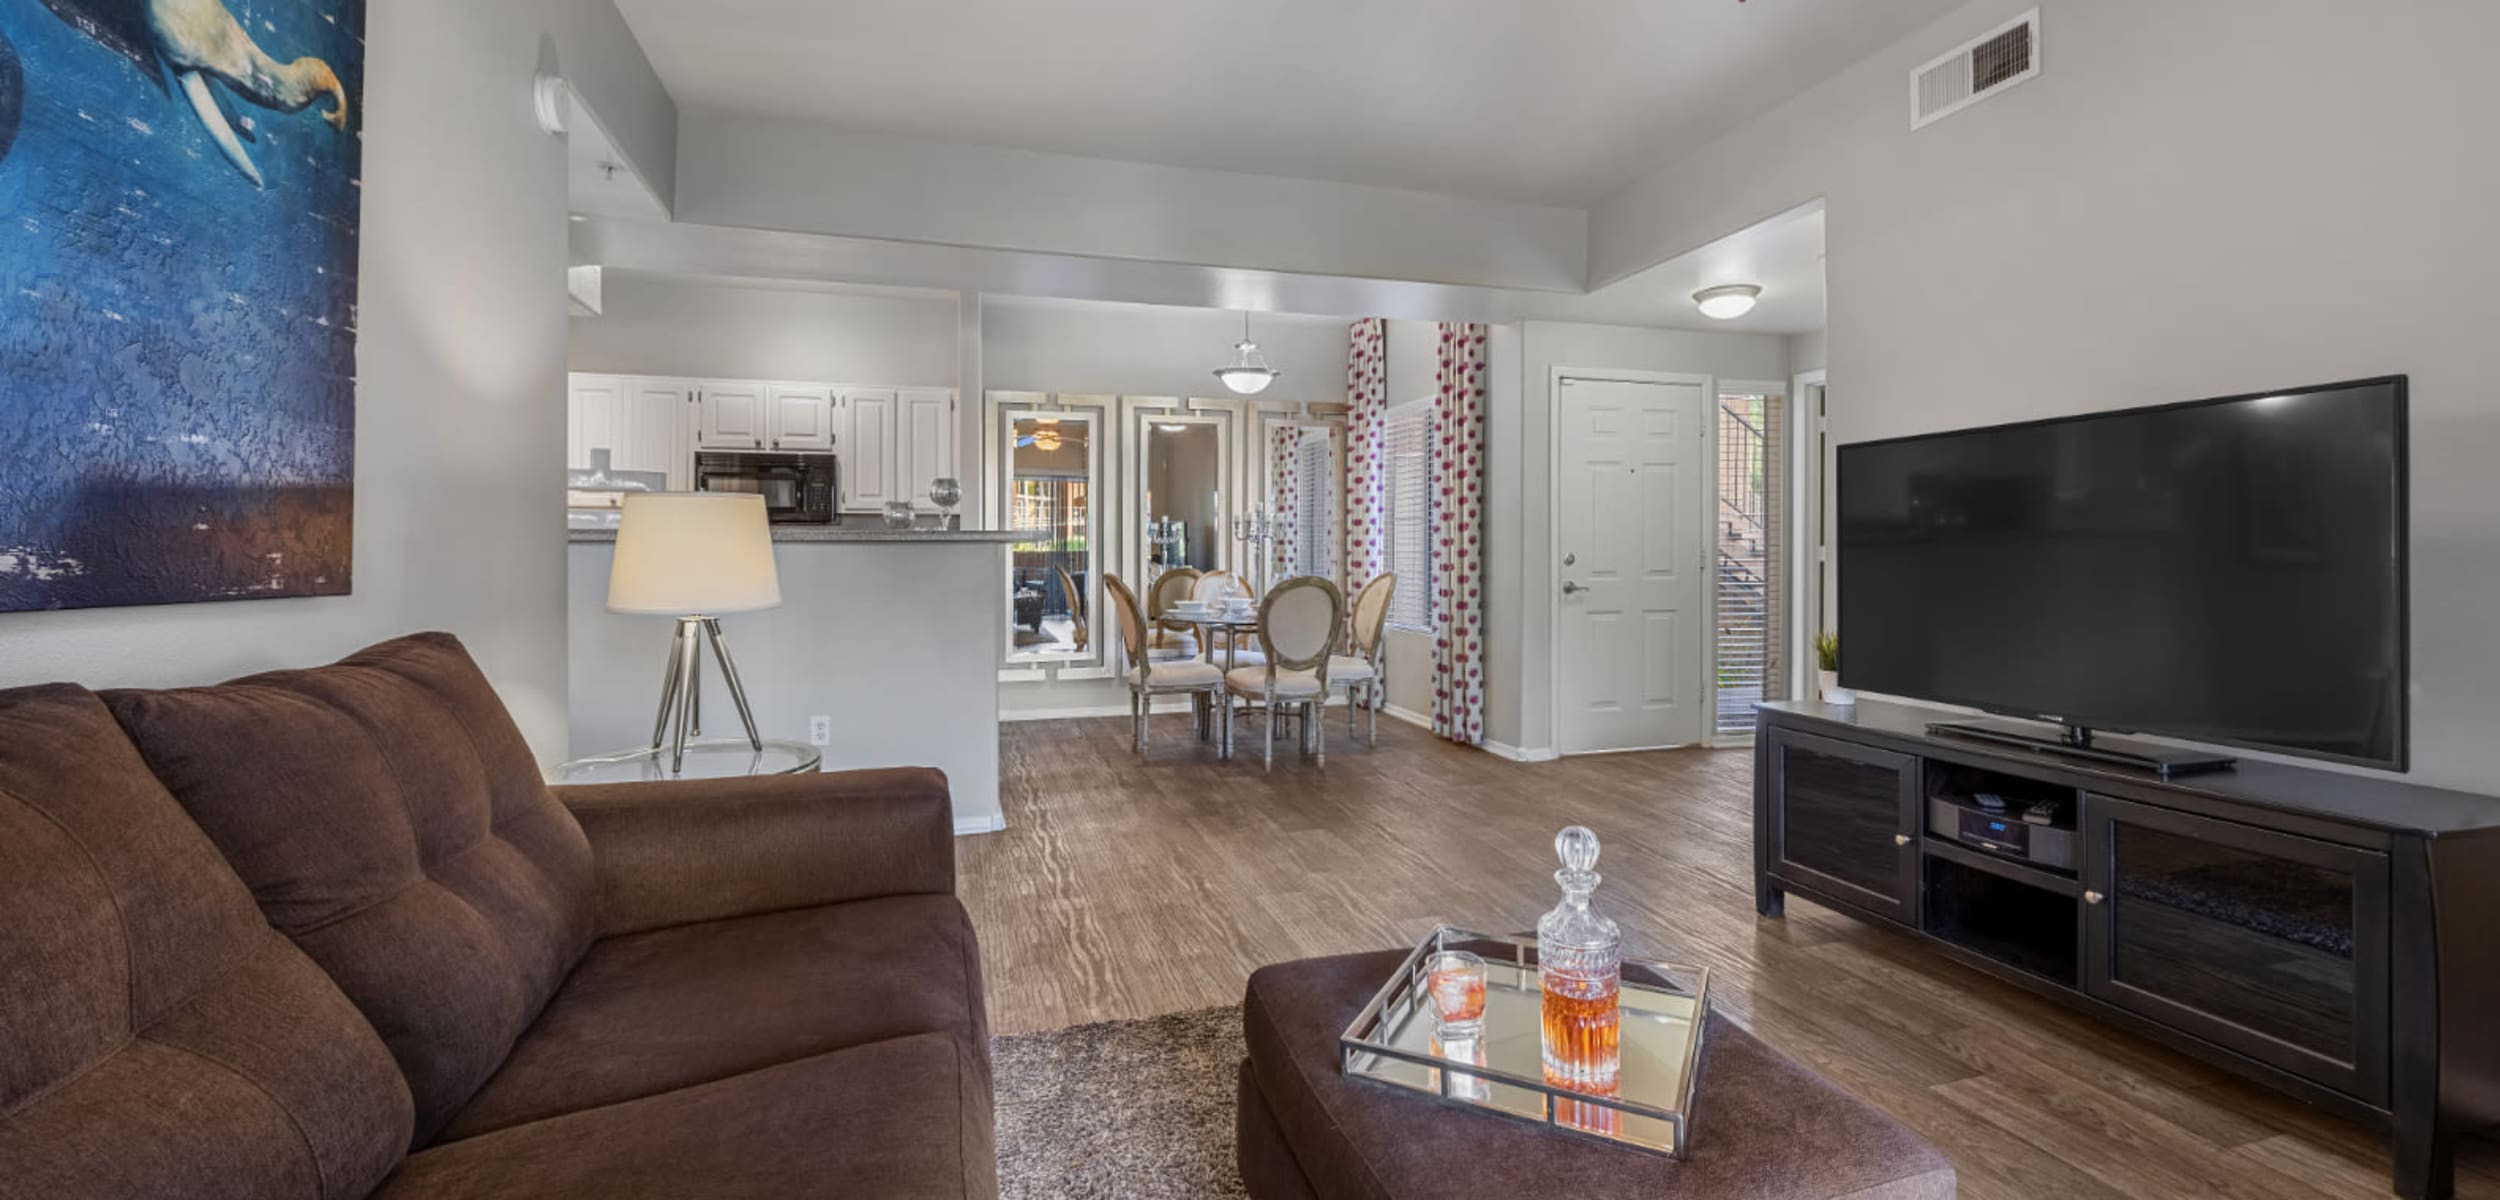 Open living space with furnishings at Alante at the Islands in Chandler, Arizona